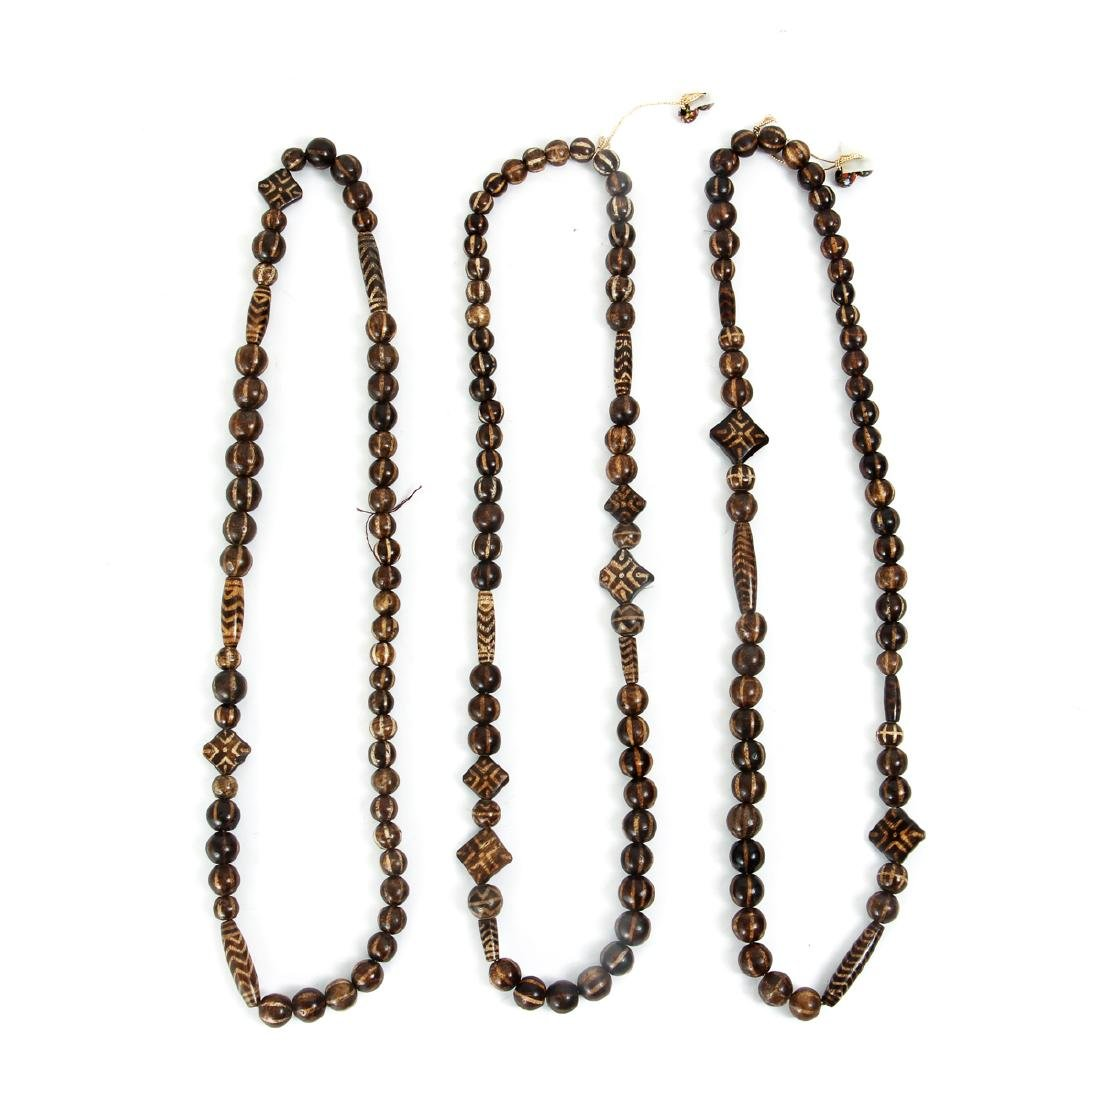 Group of Vintage Prayer and Other Beads - 3